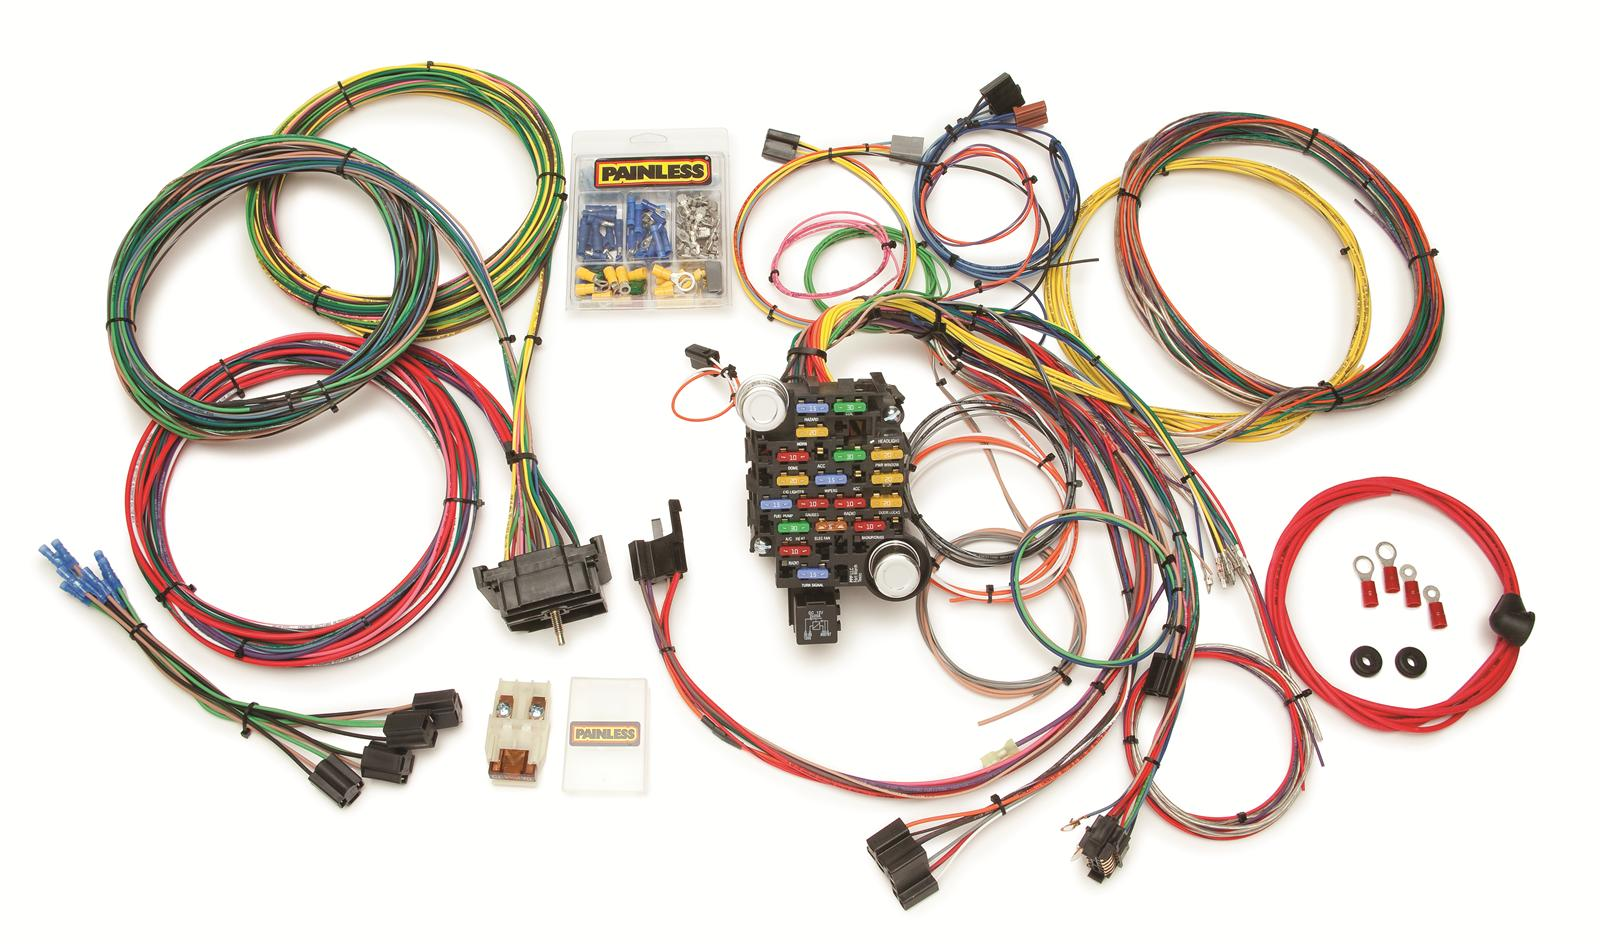 painless wiring harness chevy layout wiring diagrams \u2022 chevy 350 ignition wiring painless performance gmc chevy truck harnesses 10206 free shipping rh summitracing com painless wiring harness chevy 350 painless wiring harness chevy